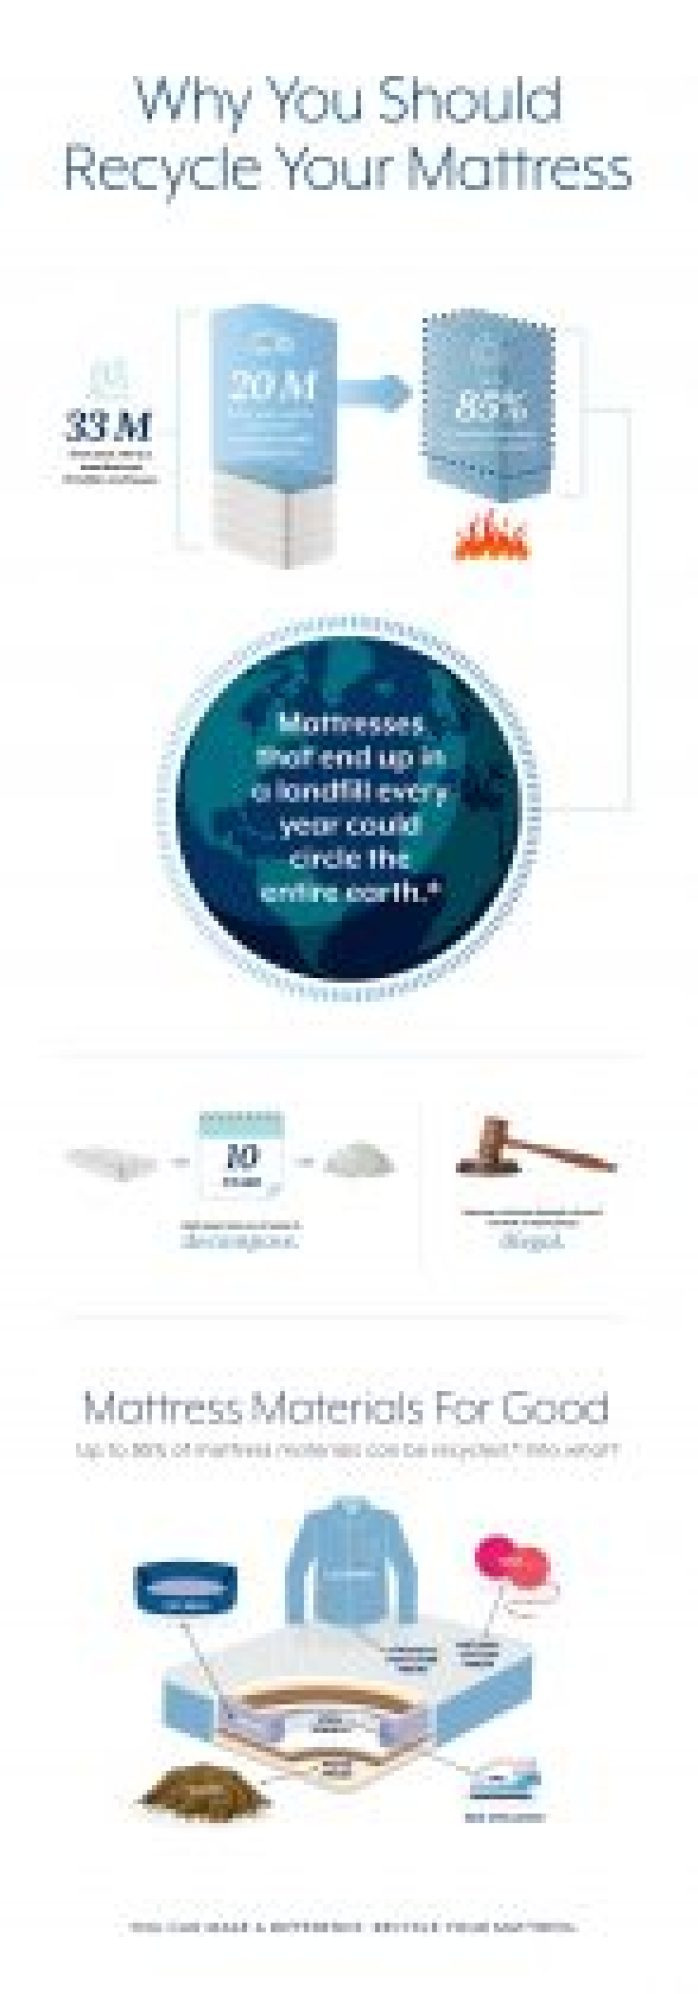 Here's a great piece on how to get rid of yourunwanted mattresswithout getting fined (or destroying the Earth). Did you know: • every year the U.S. Manufactures 33M mattresses, and every year 20M end up in a landfill or incinerator? • mattresses take 10 years to decompose? • up to 85% of materials in a mattress can be recycled into things like pet beds, mulch, and appliances? Mattress Advisorcreated a guide on exactly what to do with your unwanted mattress, whether it'srecyclingordonating to a charitable organization- there's so many options.